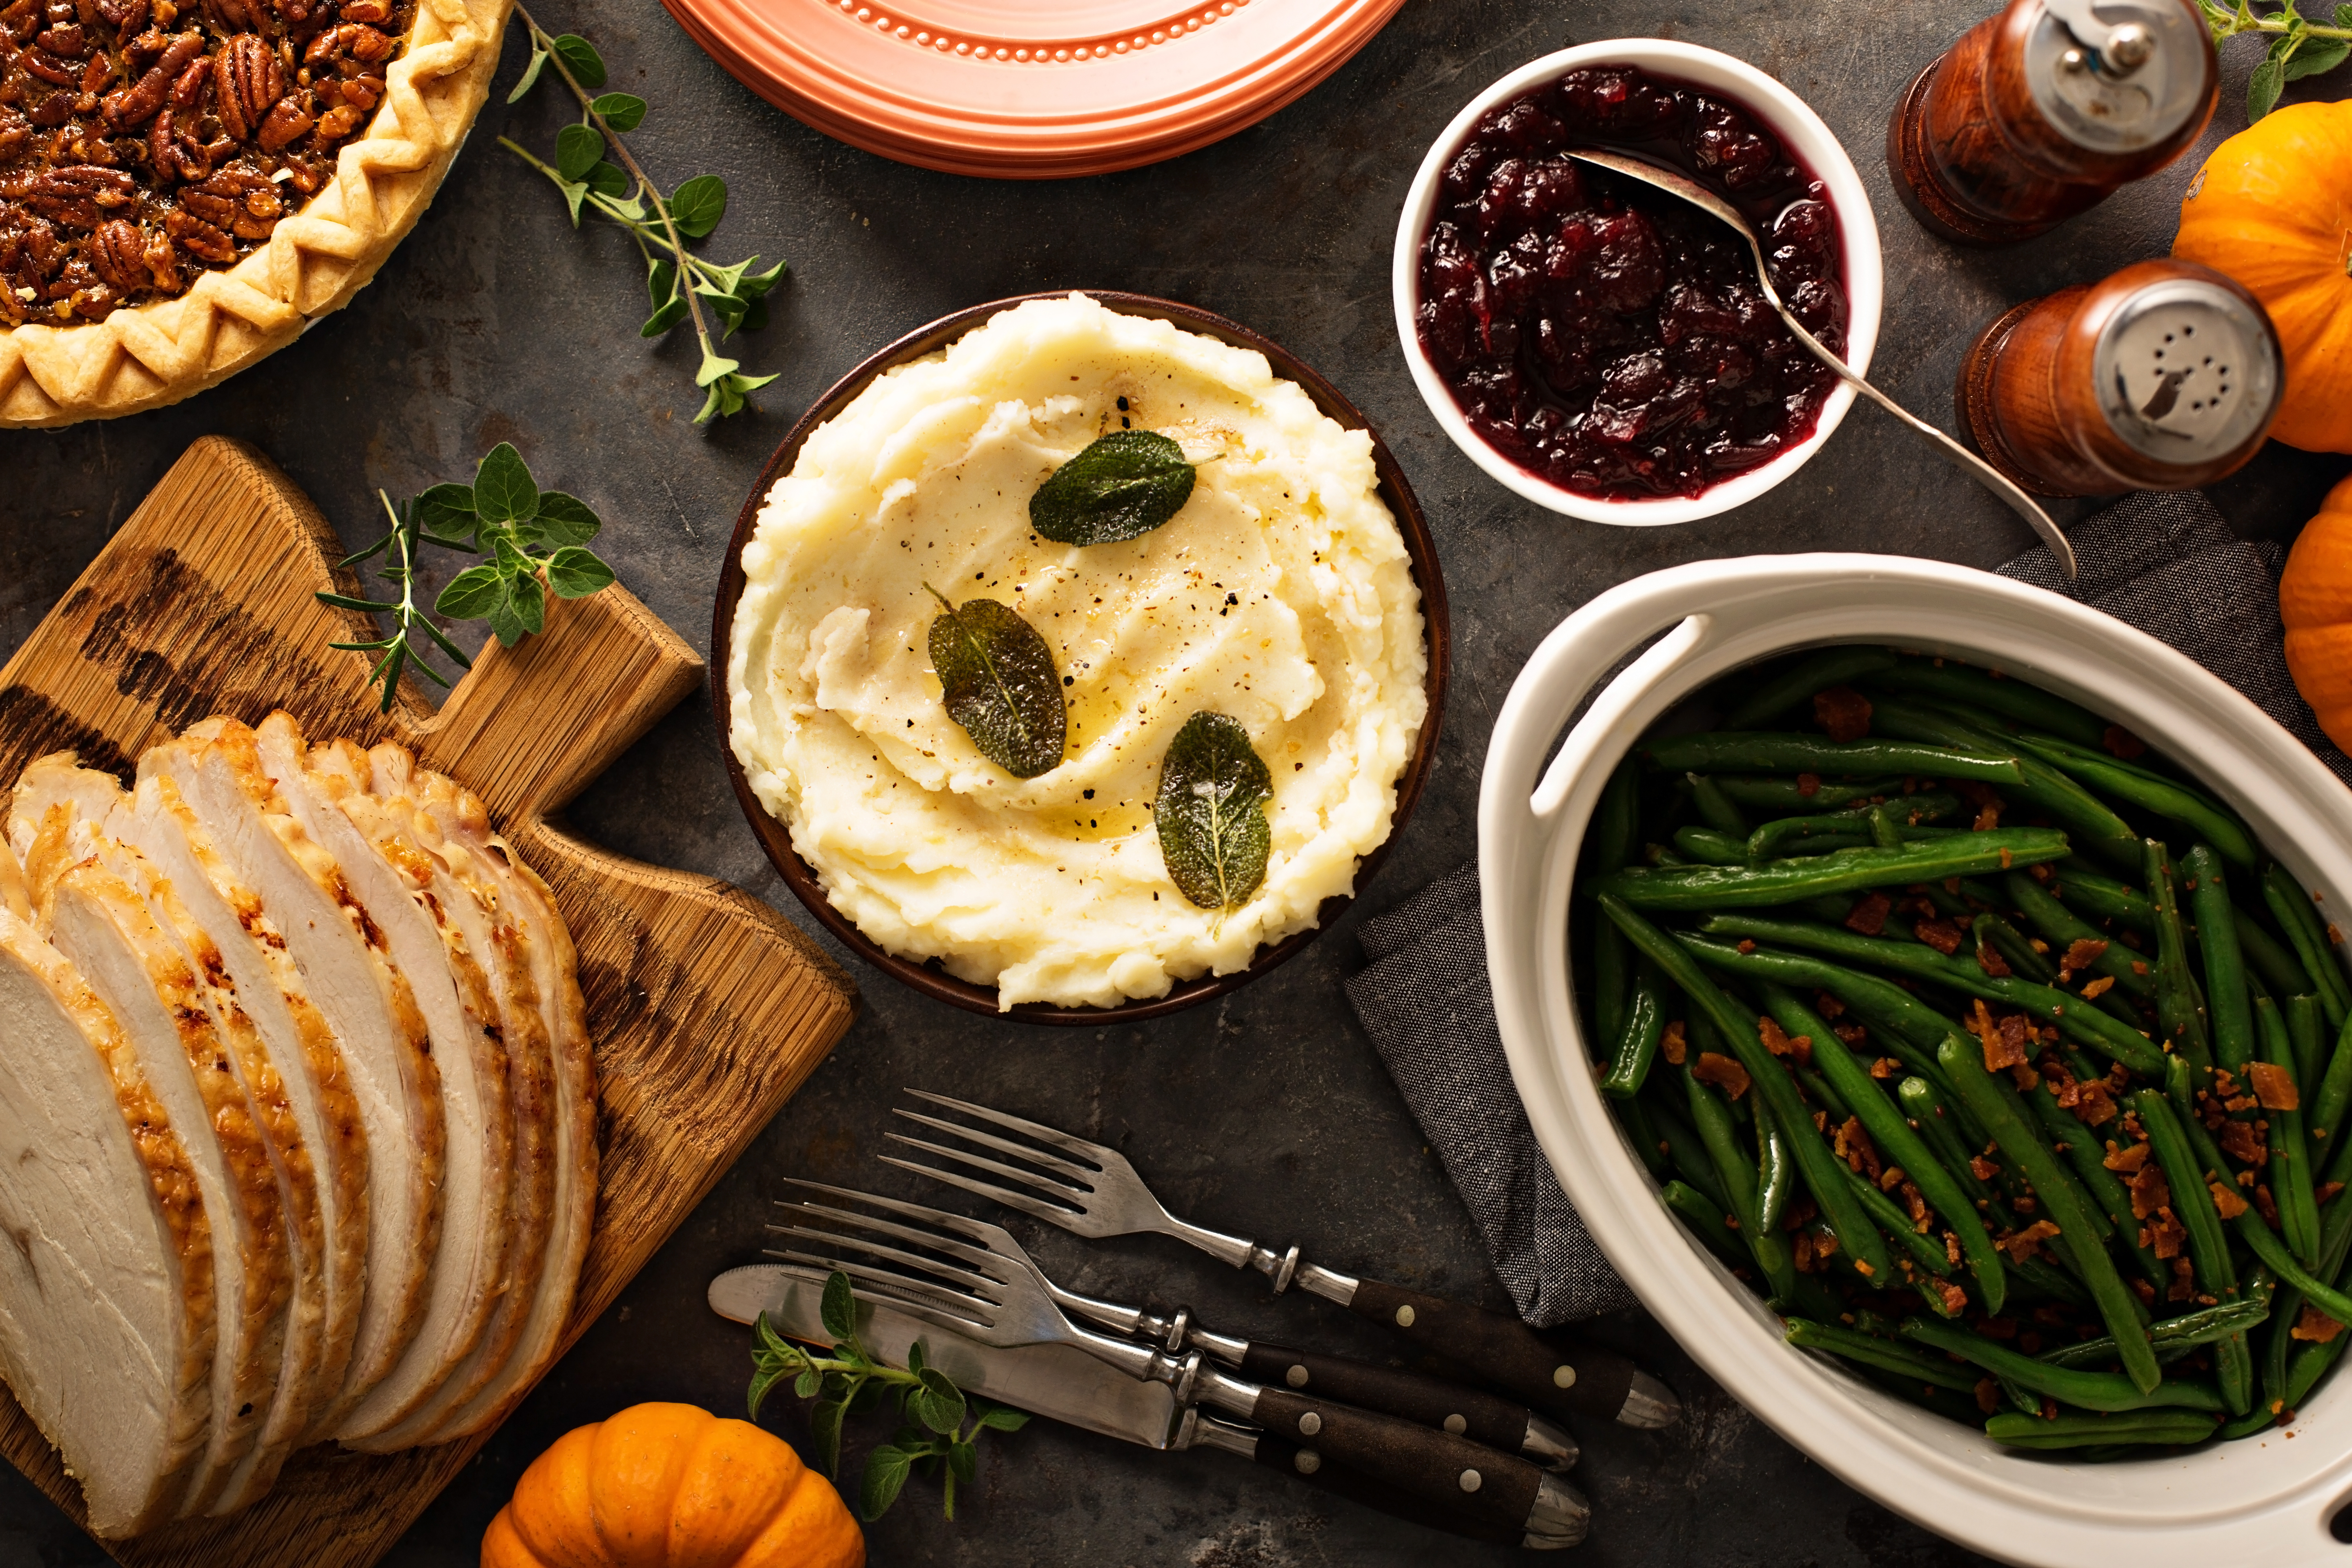 Bowls of green beans, cranberry sauce, and mashed potatoes, a plate of sliced roasted turkey, and a pecan pie on a black table, photographed from above.